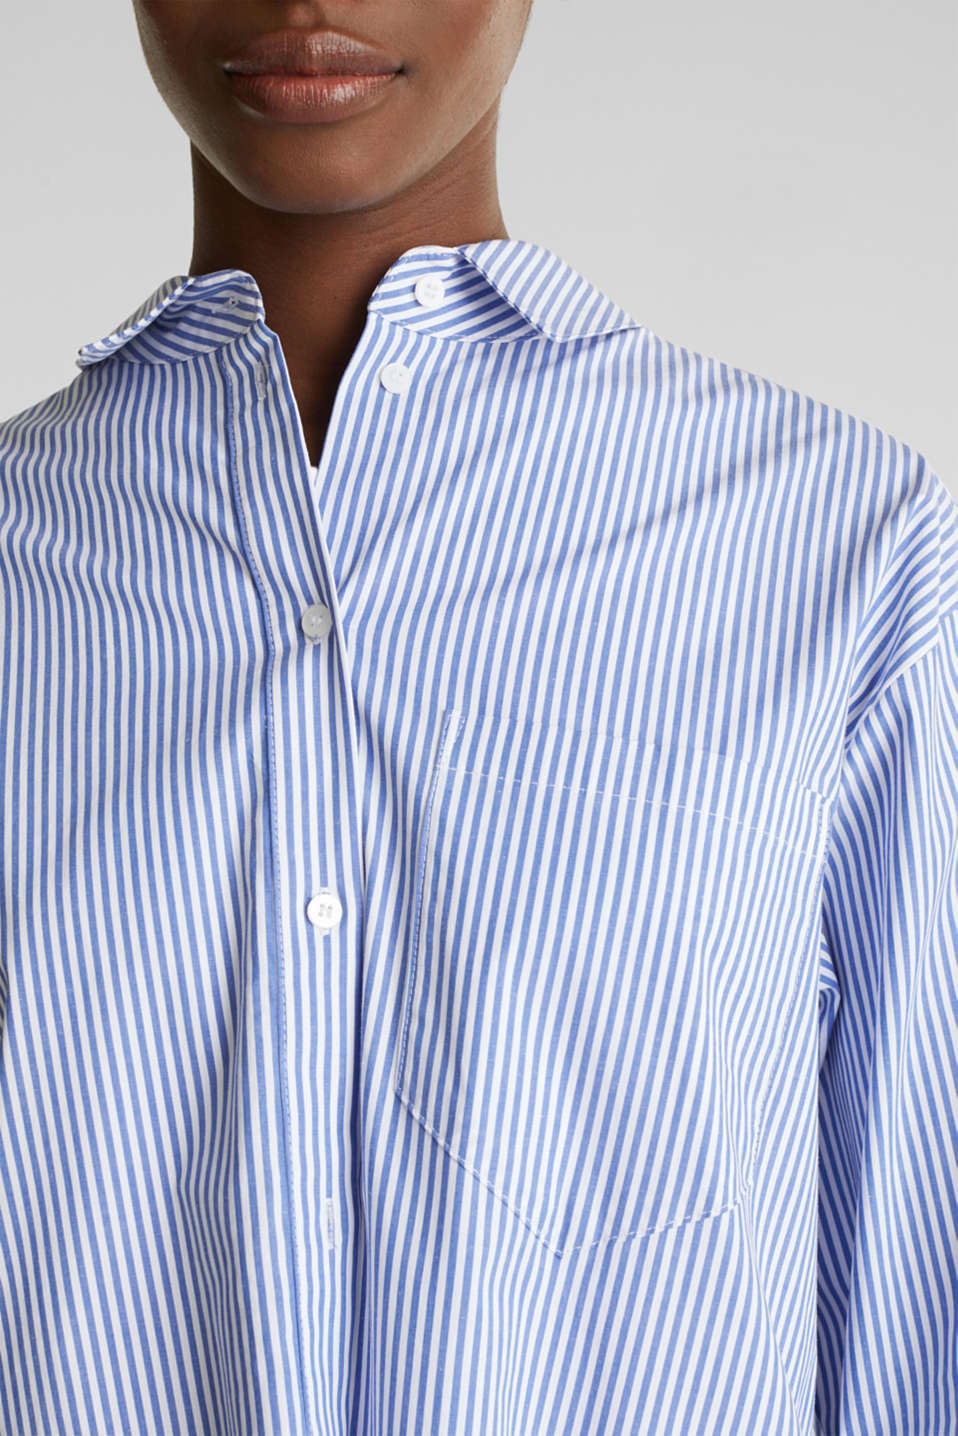 Blouses woven, LIGHT BLUE 3, detail image number 2